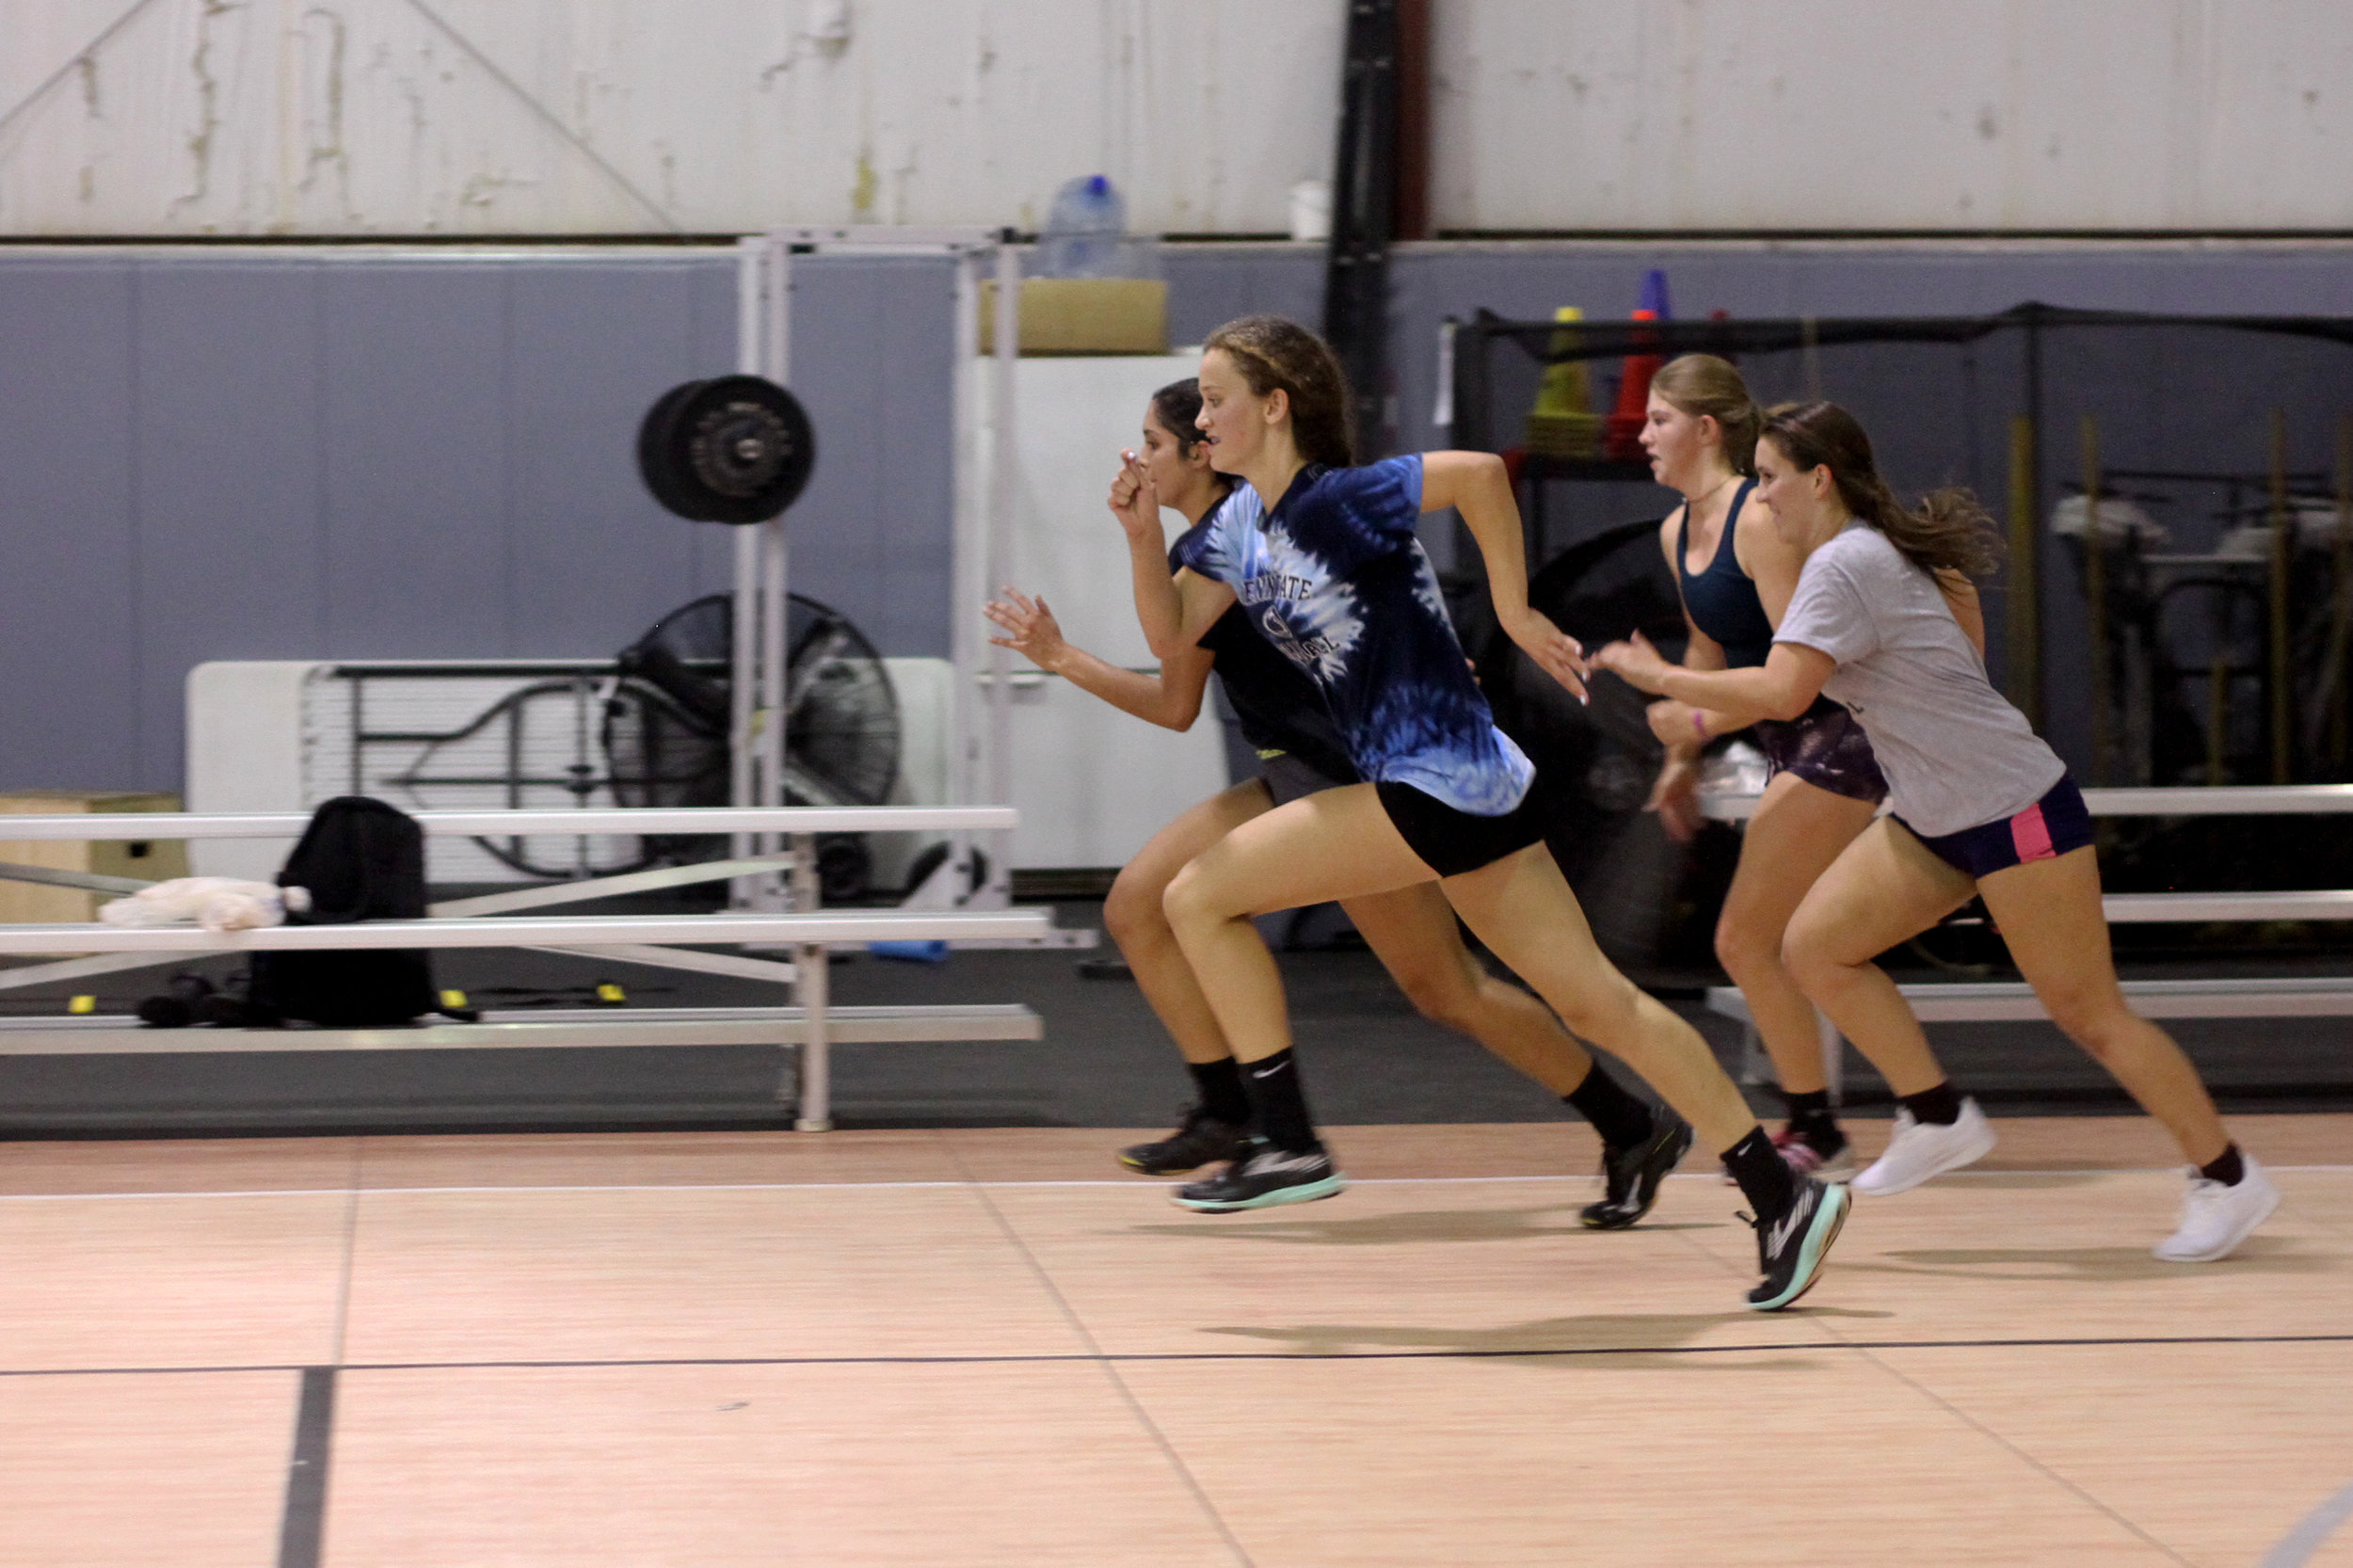 girls sprinting volleyball.jpg